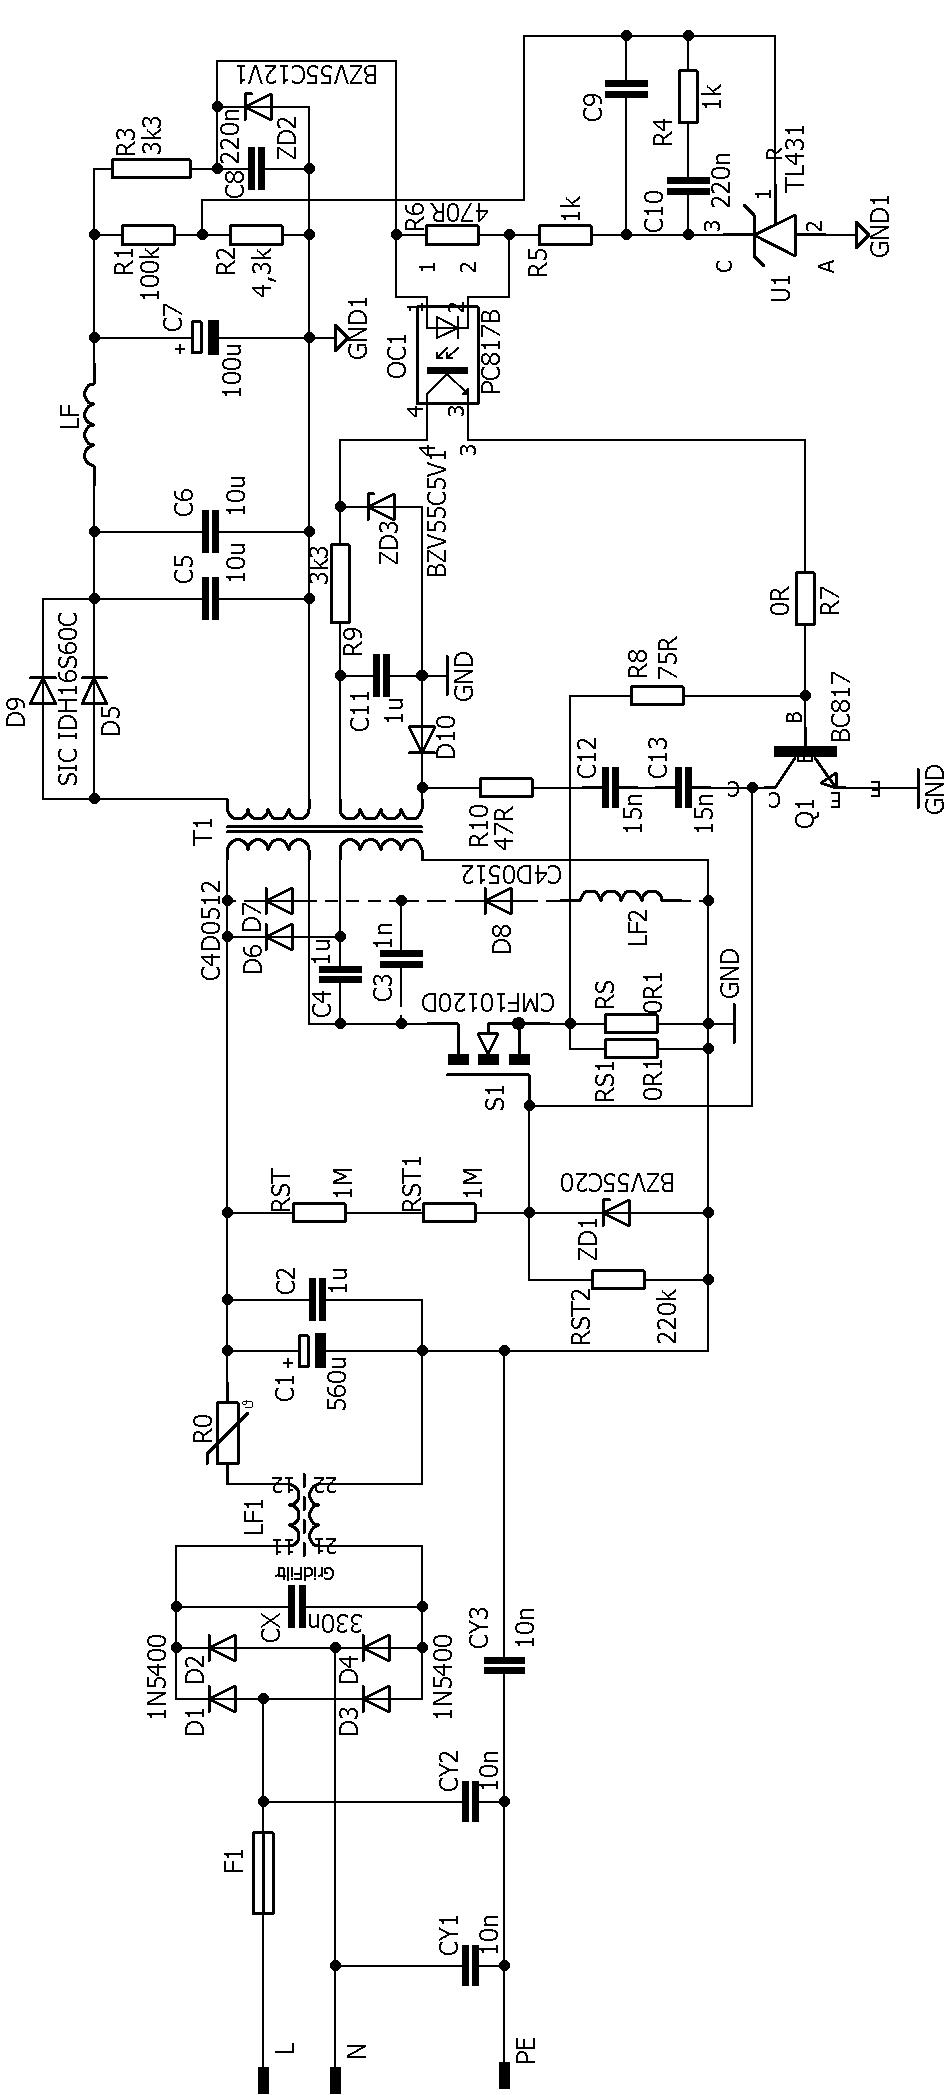 Software Tools Smps Circuits Smps Projects Smps Schematic